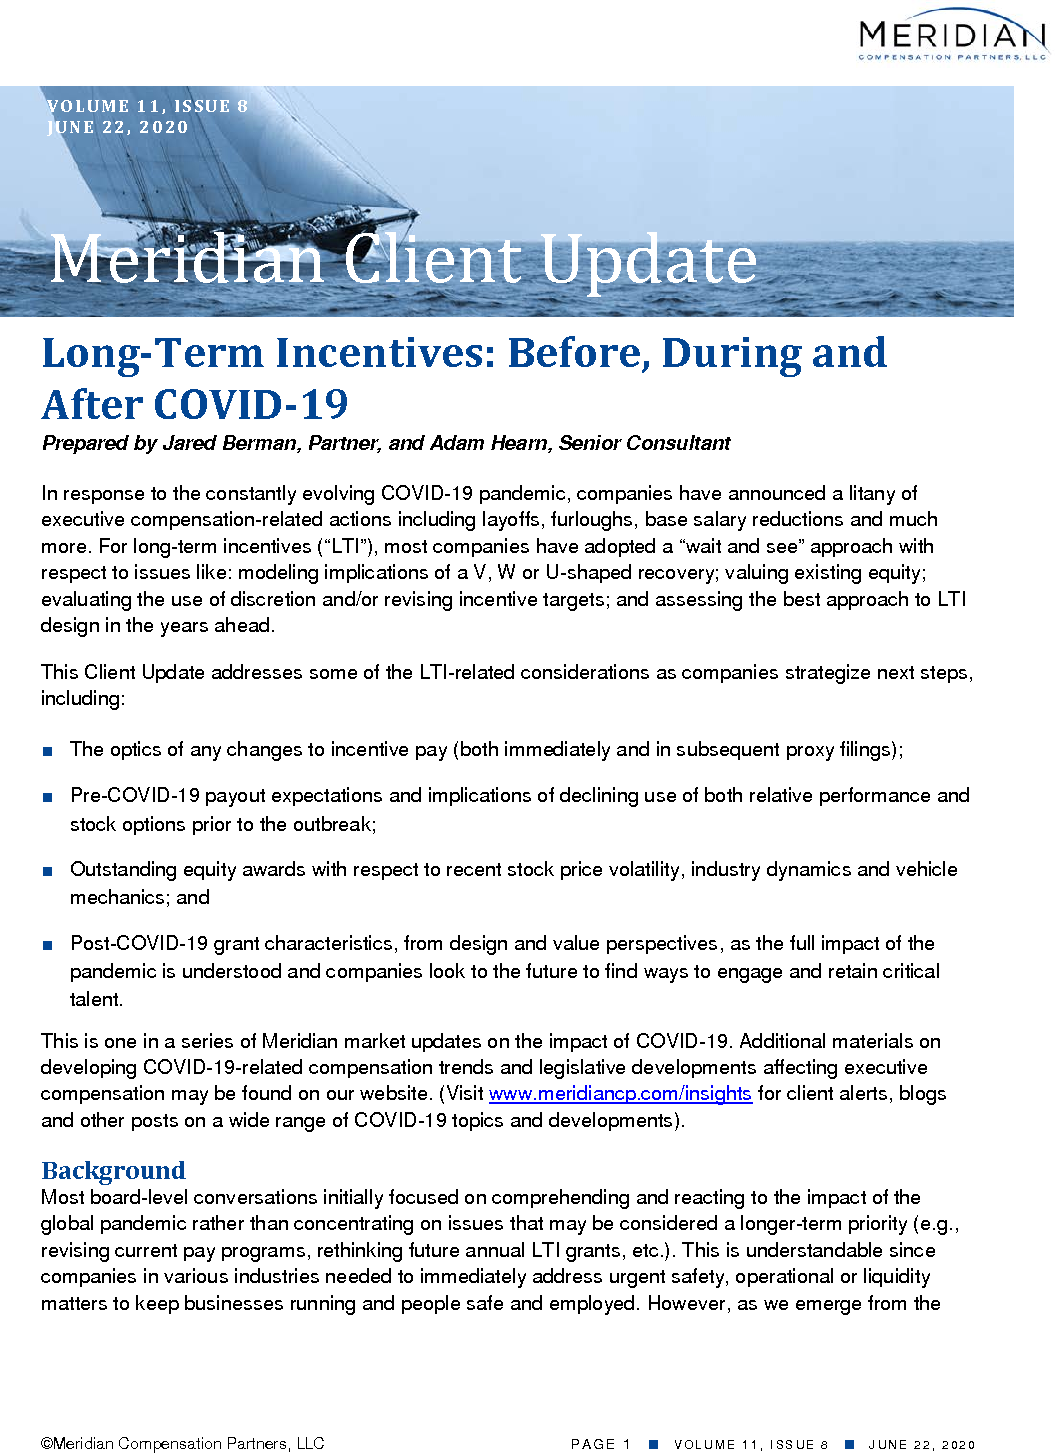 Long-Term Incentives: Before, During and After COVID-19 (PDF)